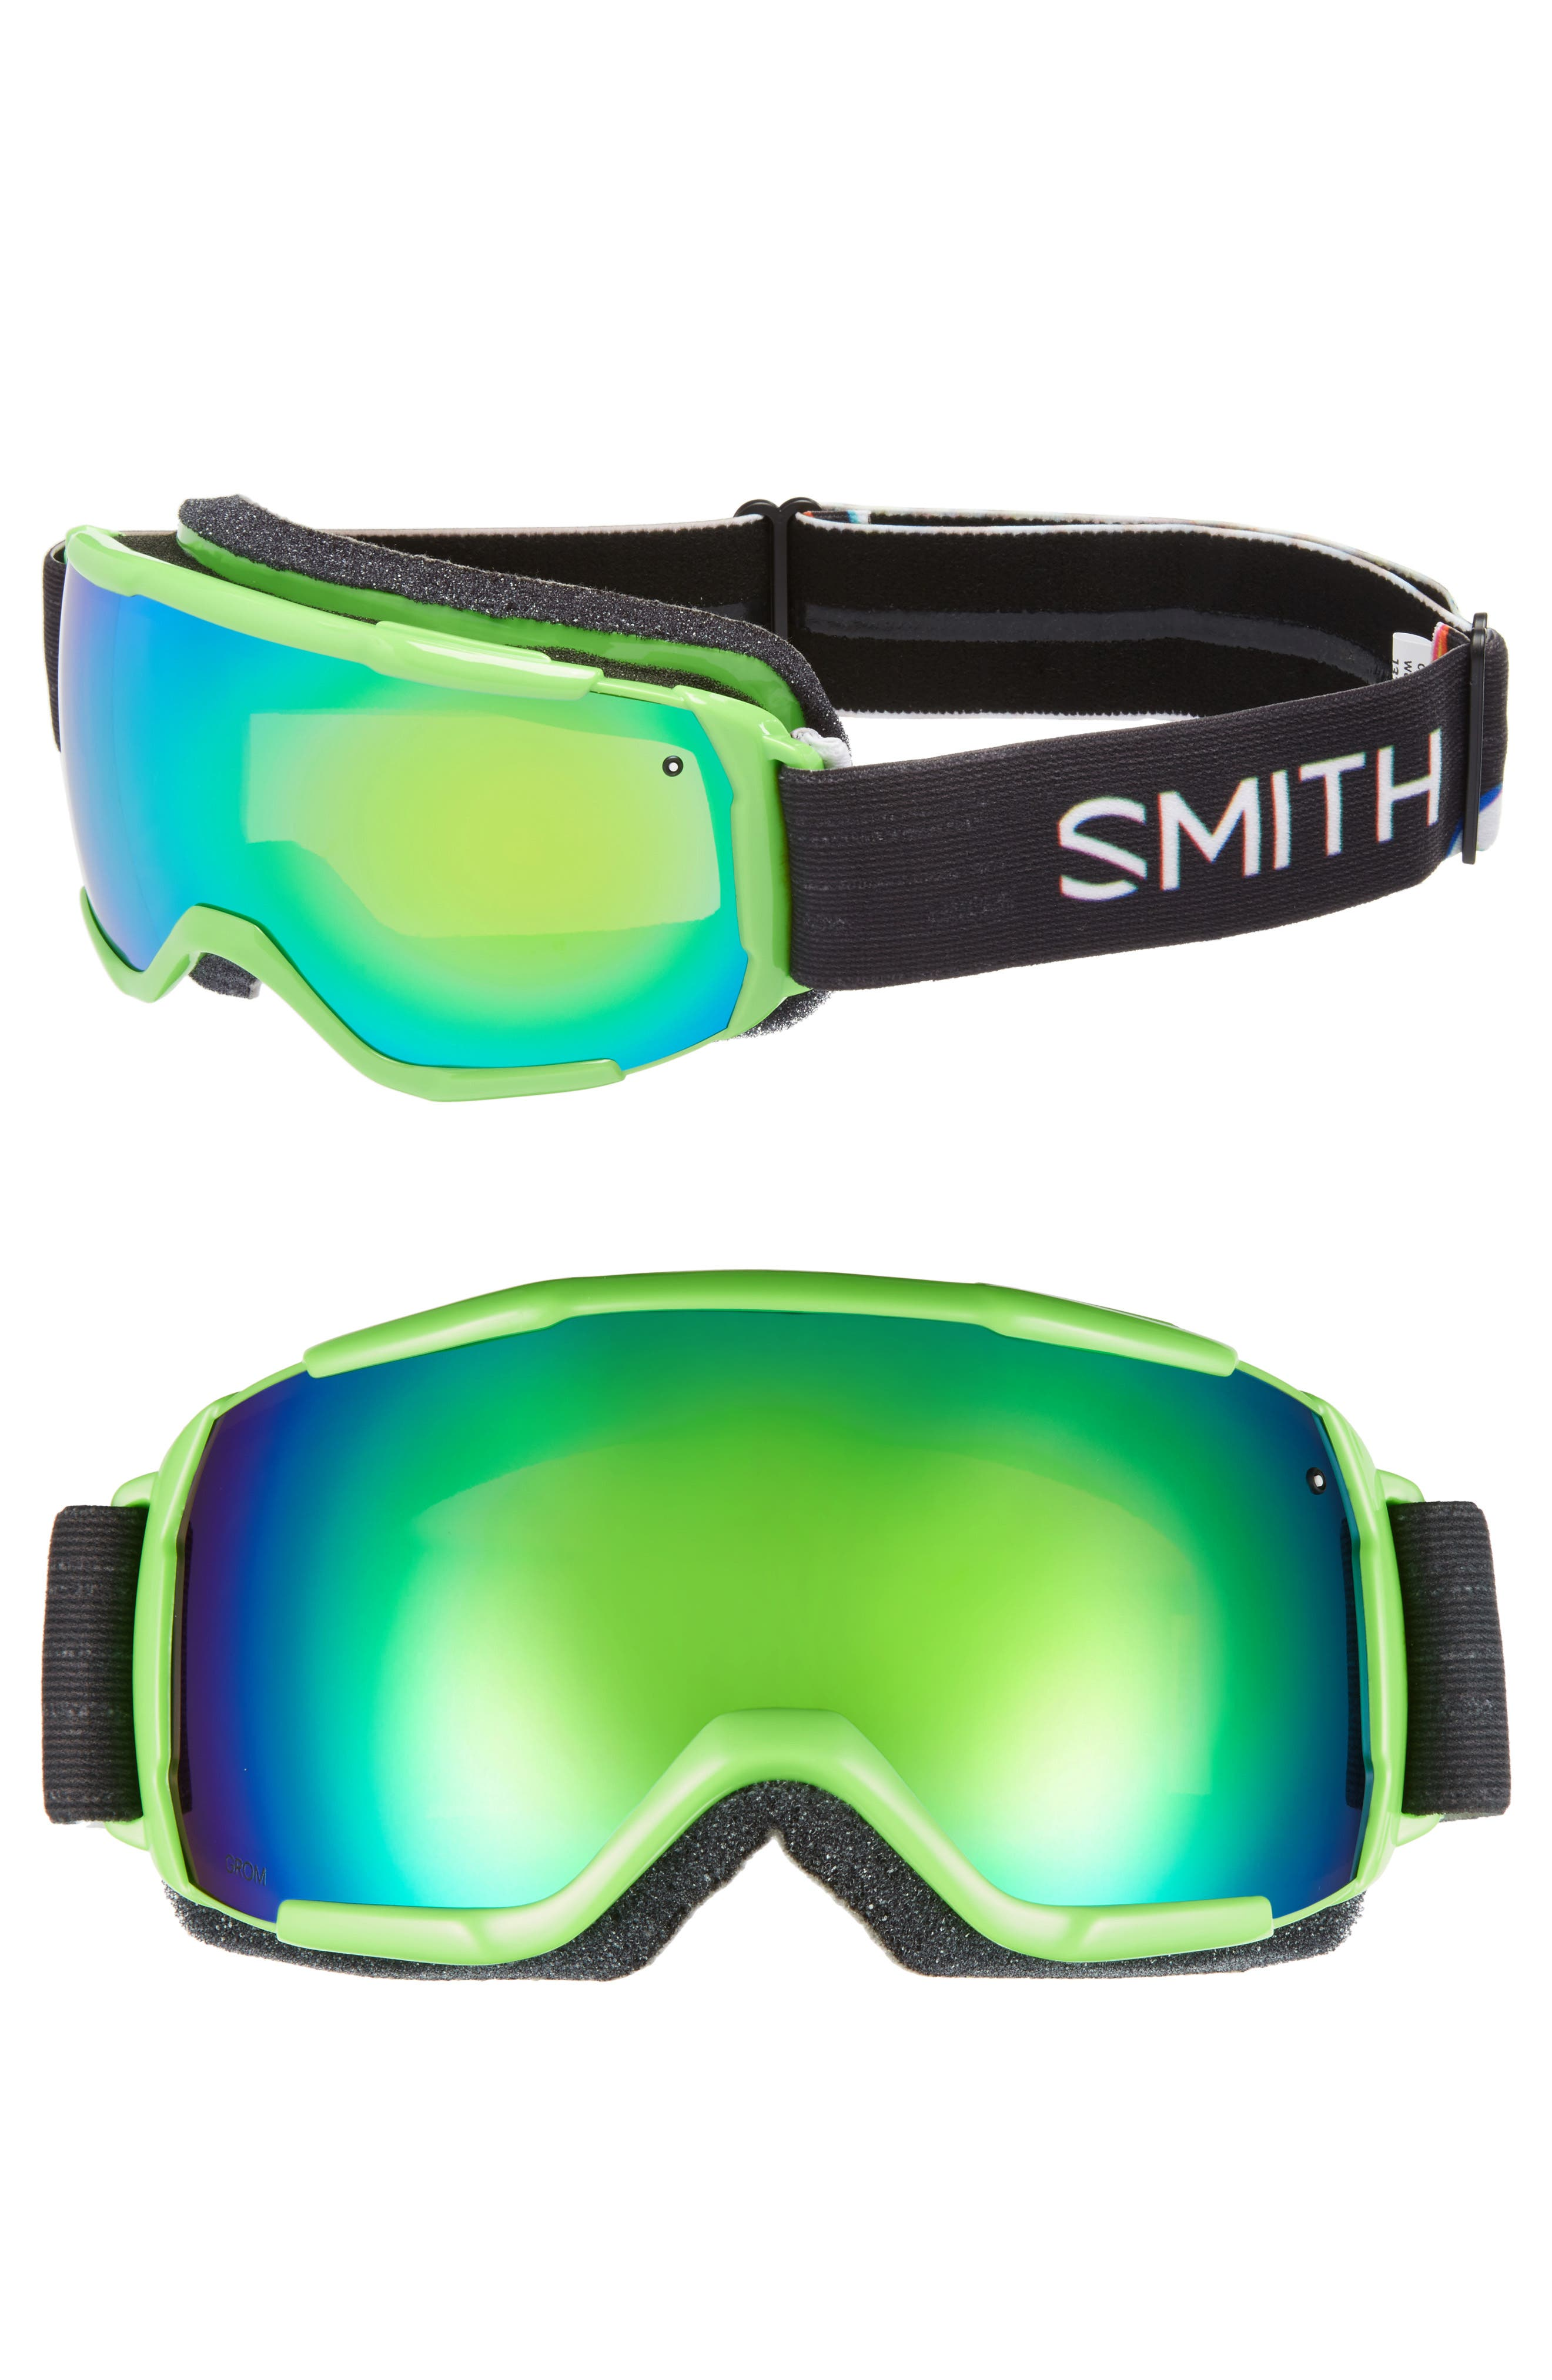 Grom Snow Goggles,                             Main thumbnail 1, color,                             Reactor Tracking/ Mirror